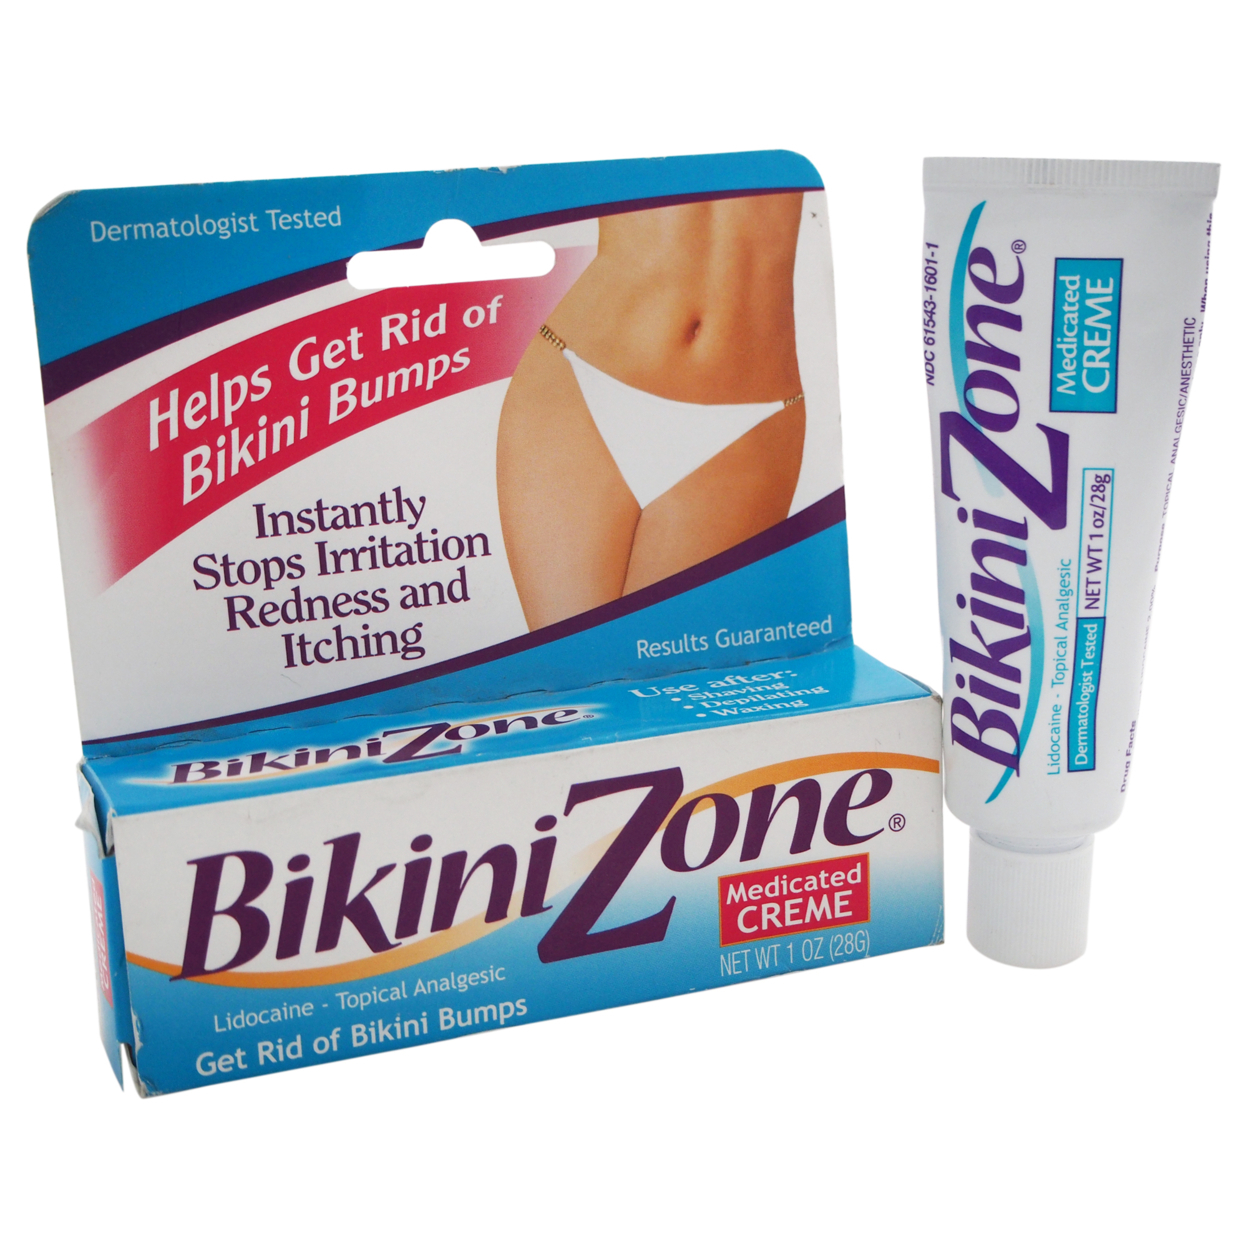 Medicated Creme by Bikini Zone for Women - 1 oz Creme 5898e18dc98fc4508f3b6573